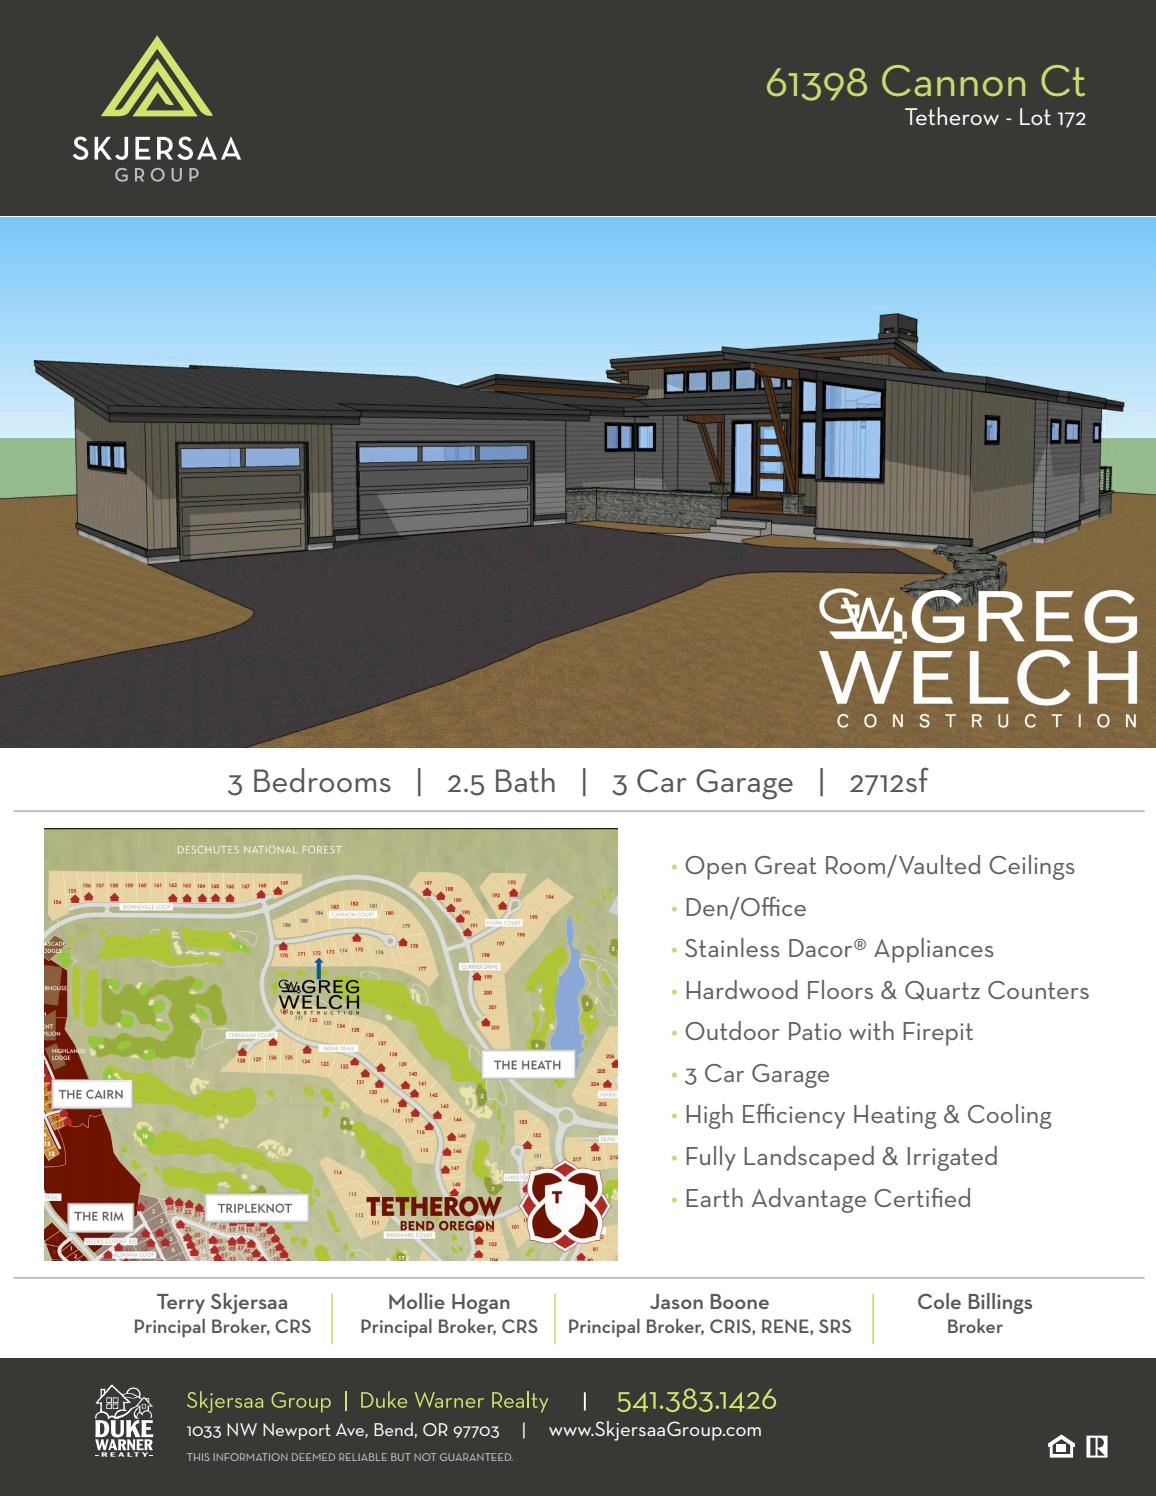 61398 Cannon Ct - Tetherow Lot 172 by Duke Warner Realty - issuu